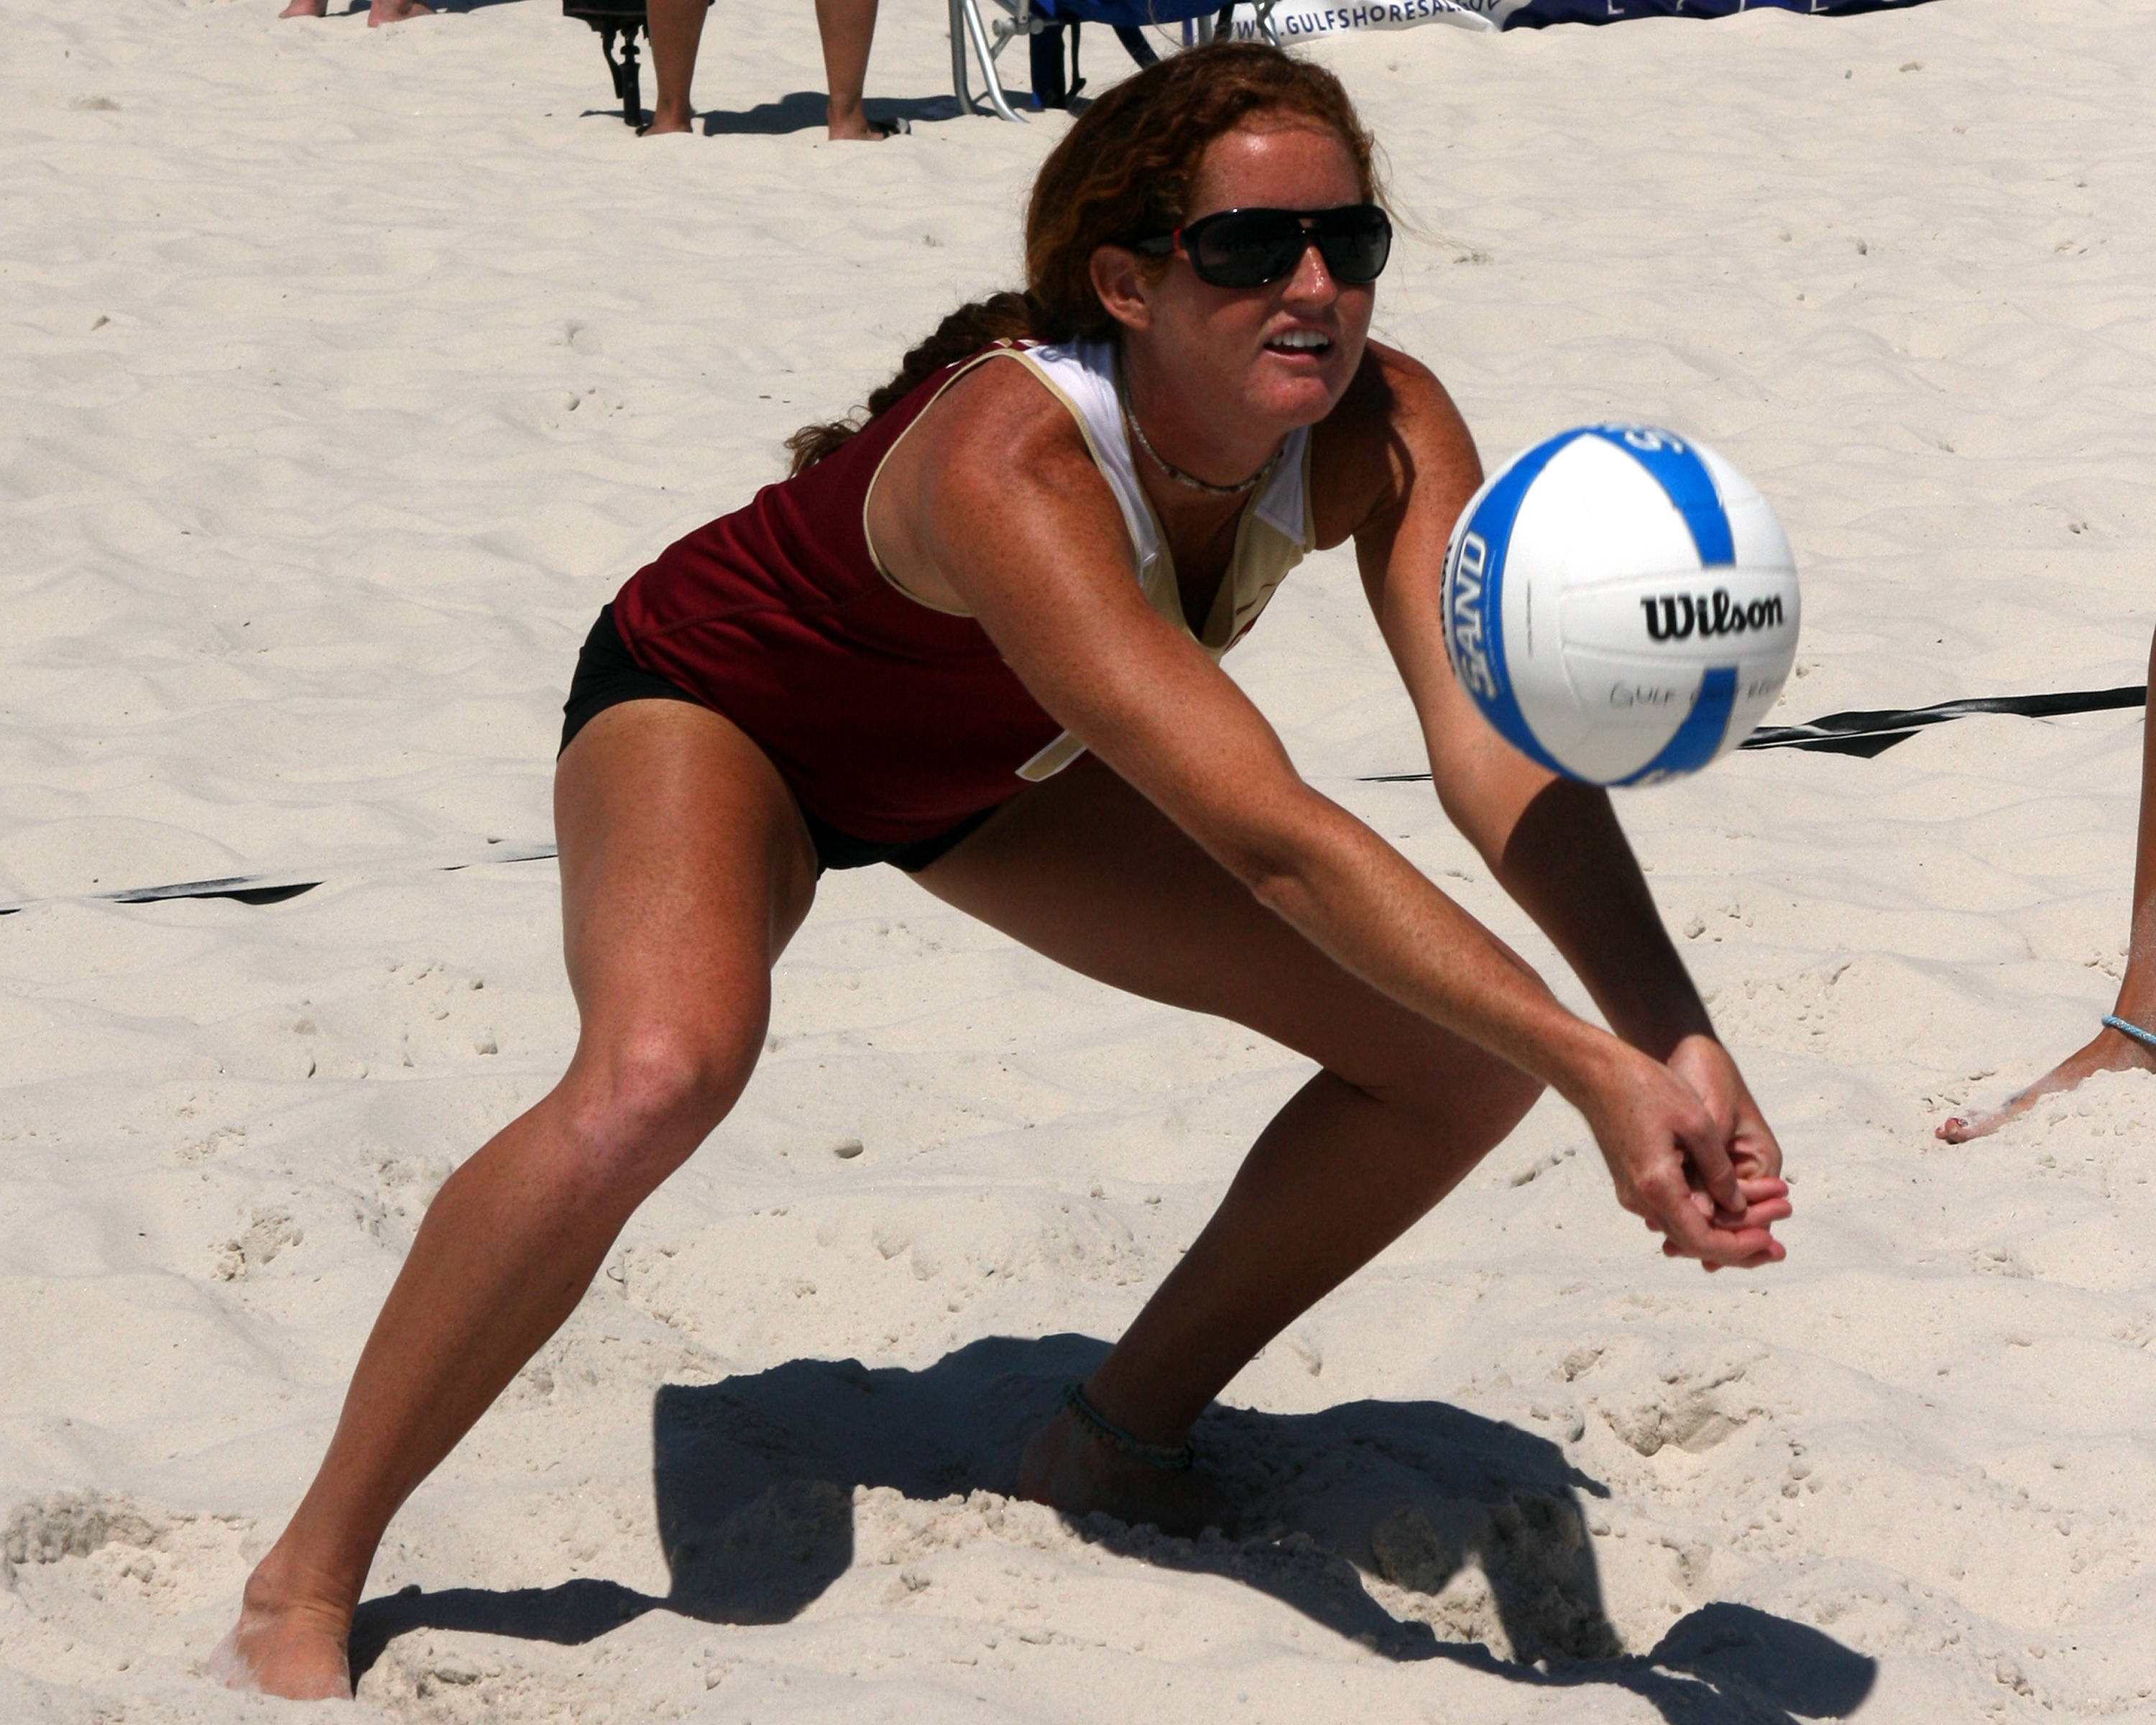 Brittany Tiegs, SAND VOLLEYBALL COLLEGIATE CHAMPIONSHIPS,  04/28/2012